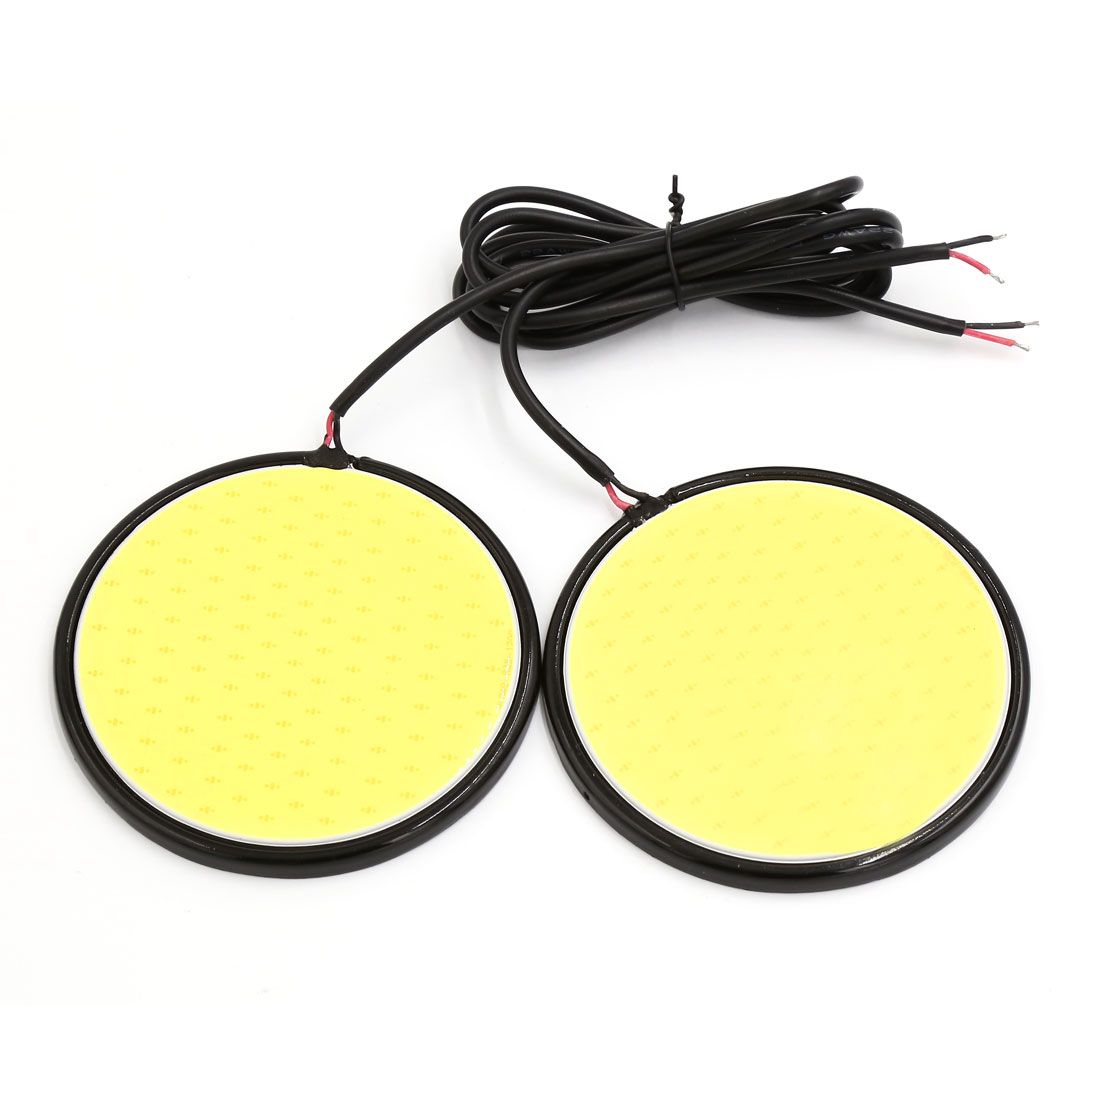 2 Pcs 8cm Dia White COB LED Round DRL Daytime Running Light Lamp for Car Auto